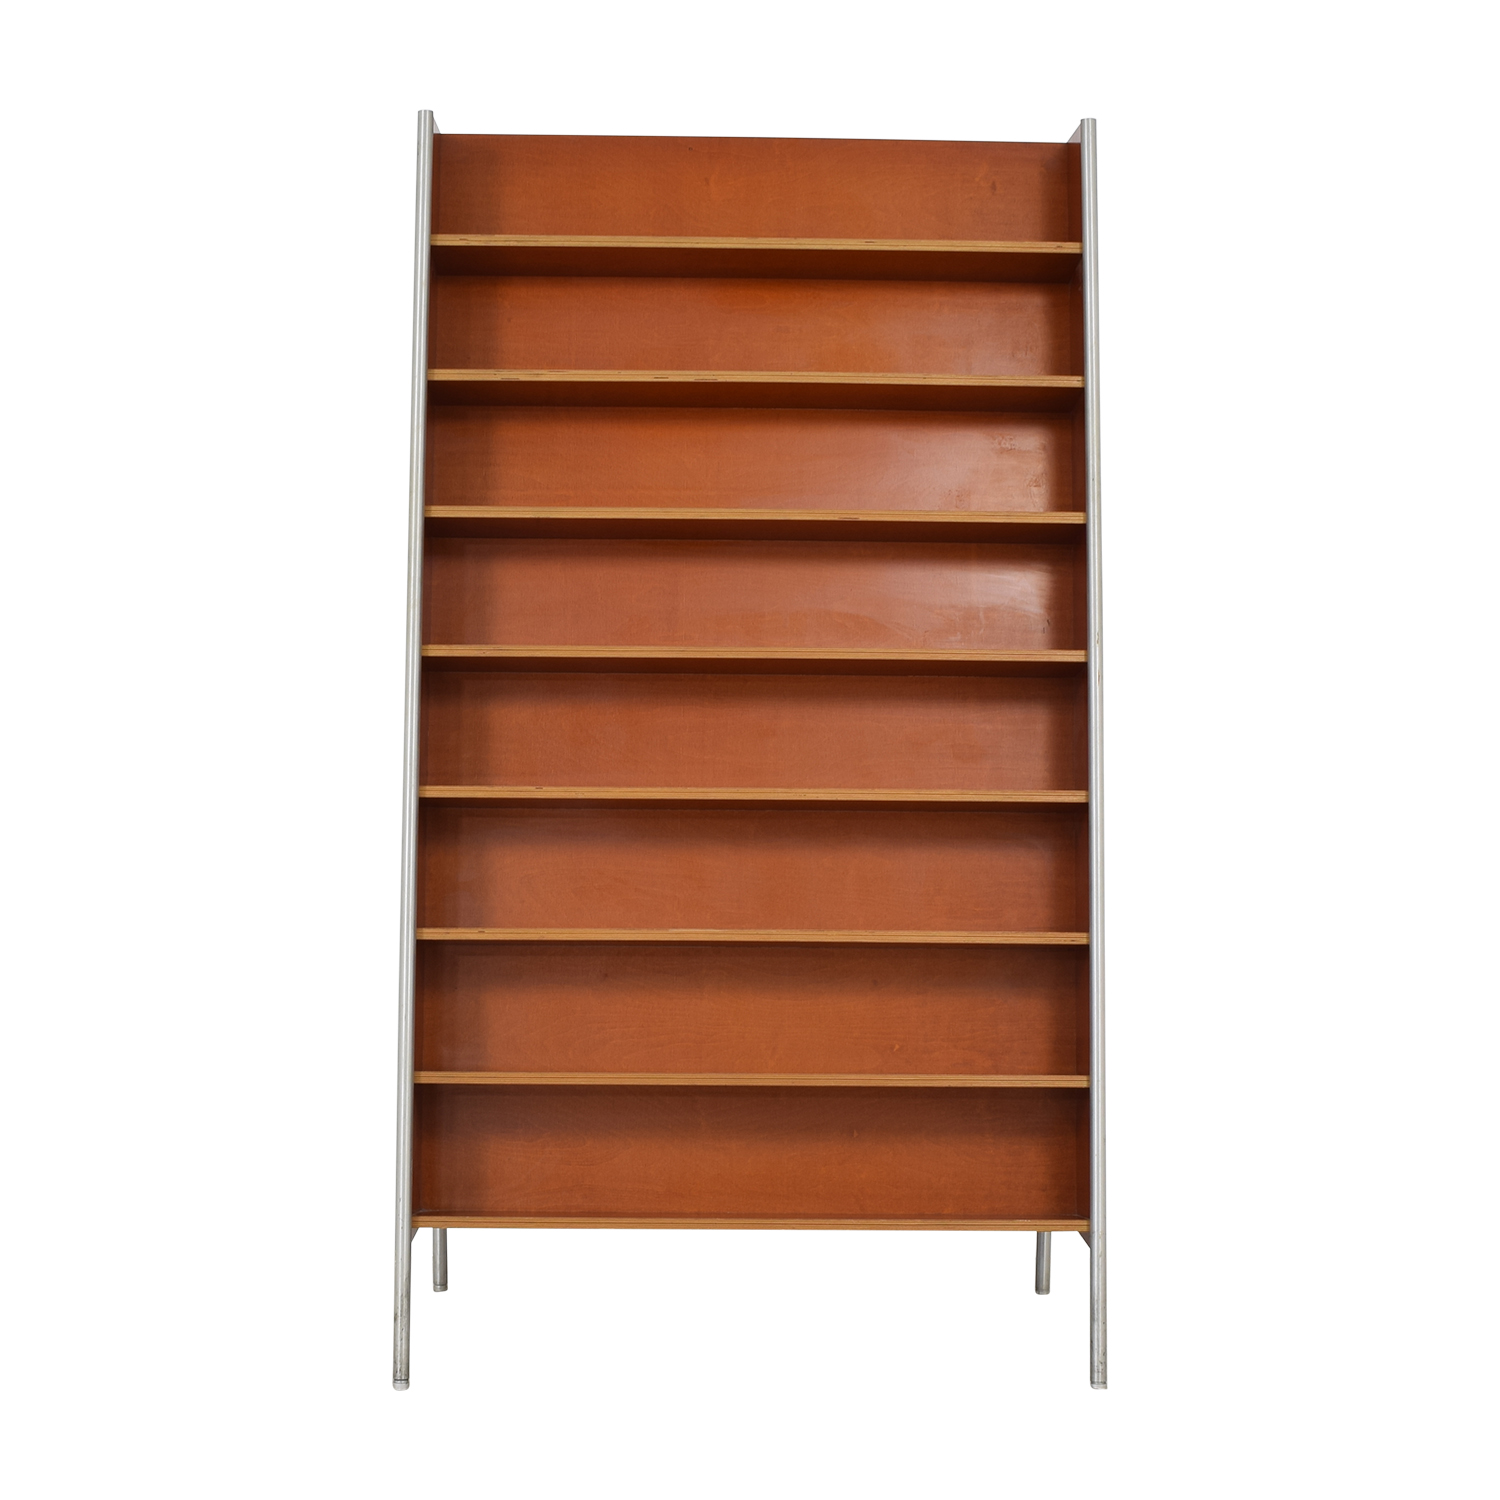 Custom Metal and Wood Bookcase used